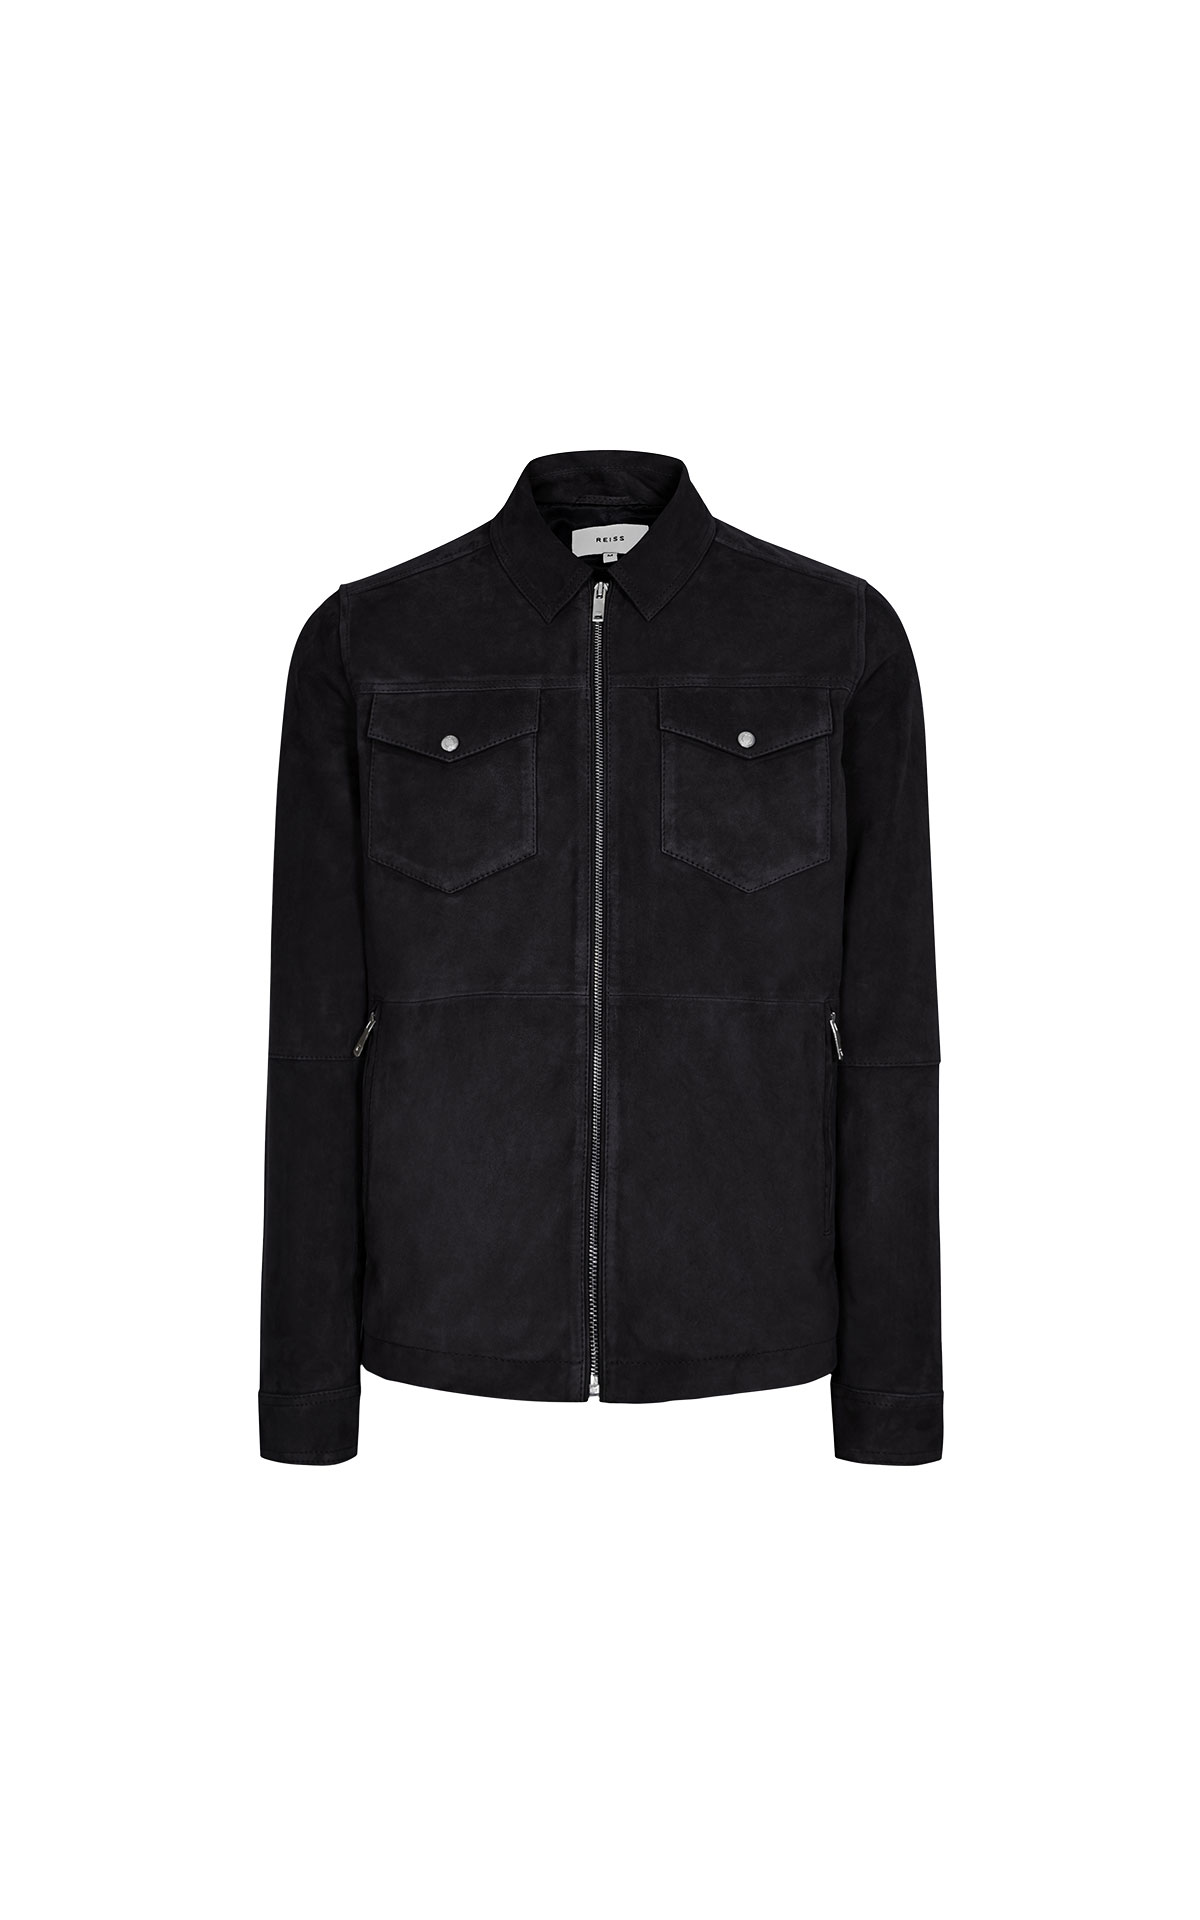 Reiss Cash suede zip through jacket from Bicester Village